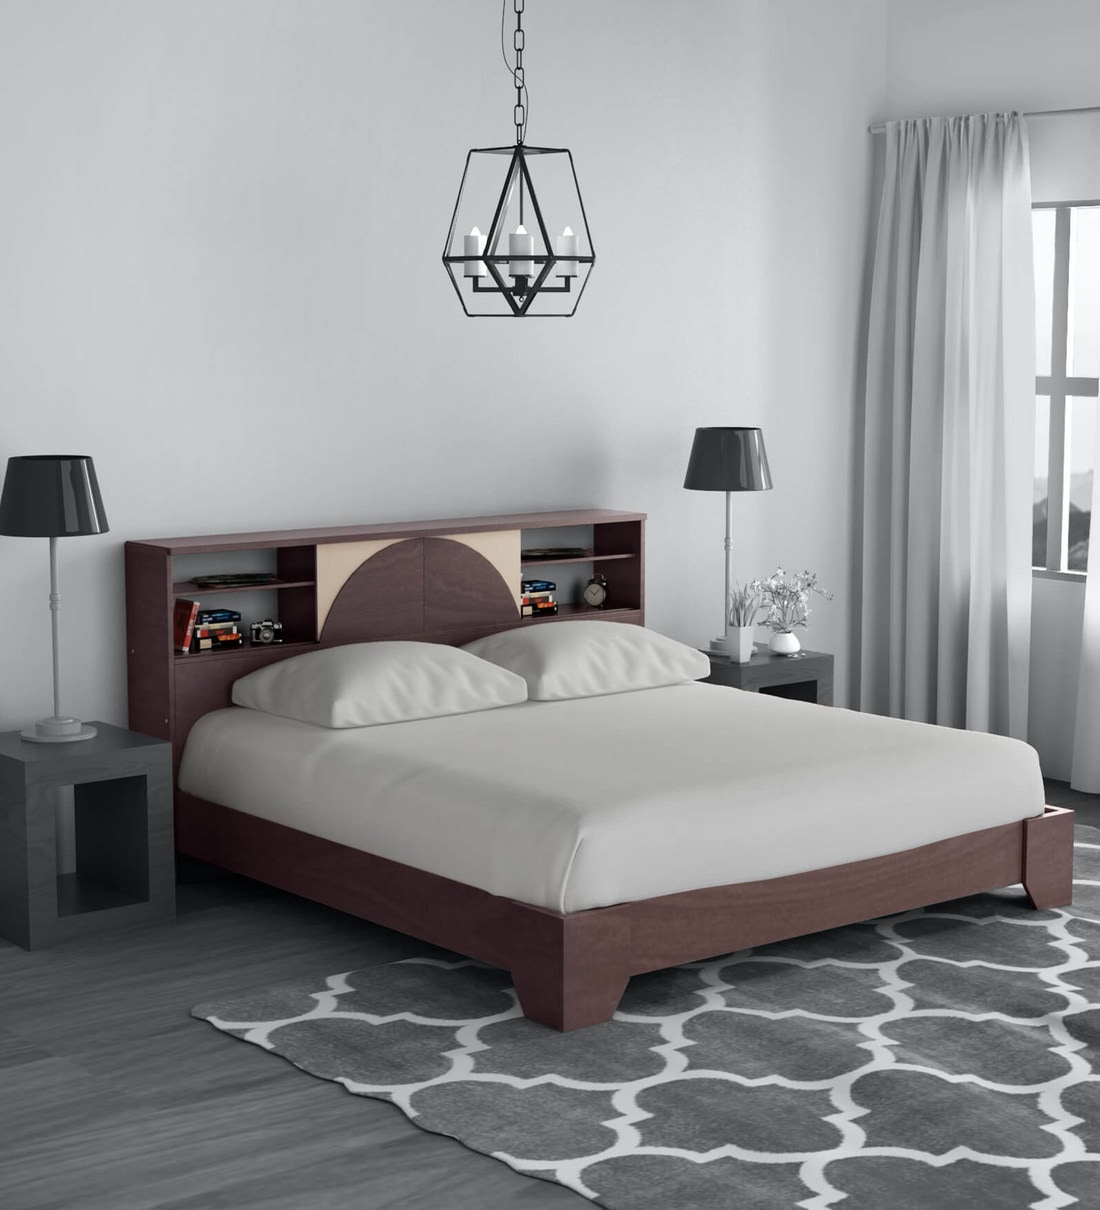 Picture of: Buy Vida King Size Bed With Headboard Storage In Wenge Finish By Mintwud Online Modern King Size Beds Beds Furniture Pepperfry Product